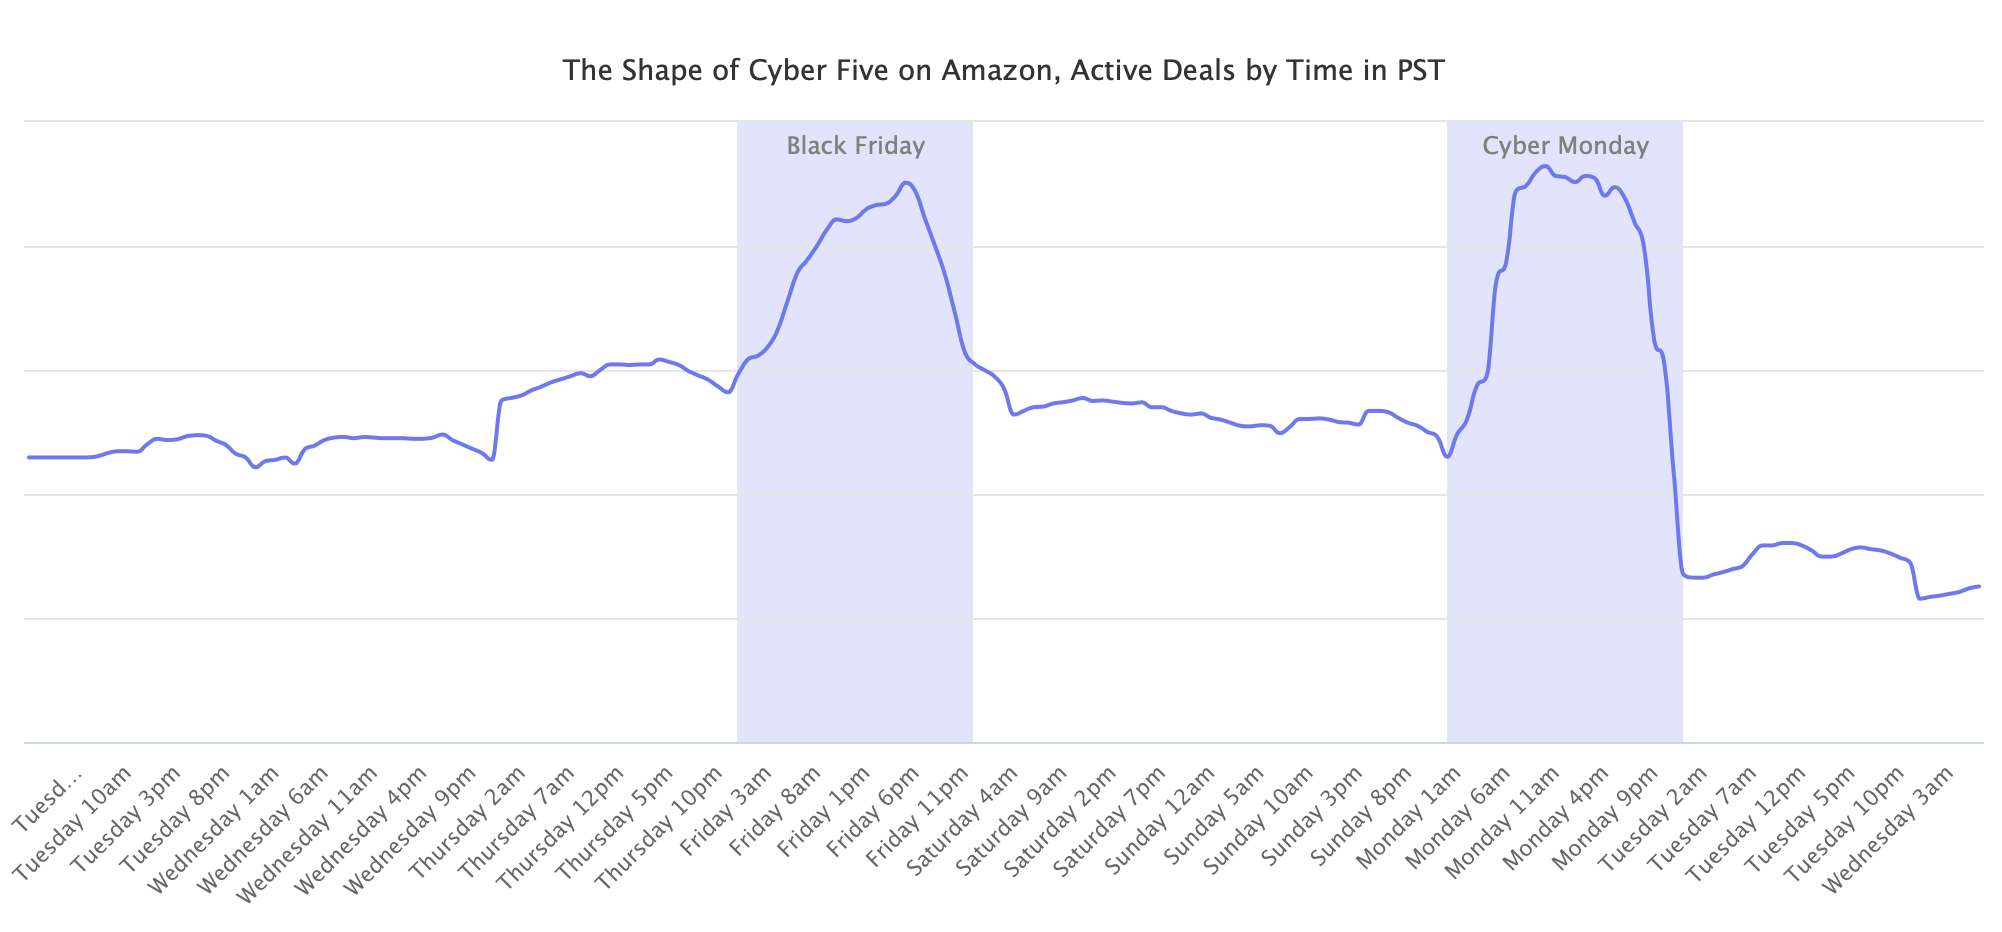 The Shape of Cyber Five on Amazon, Active Deals by Time in PST